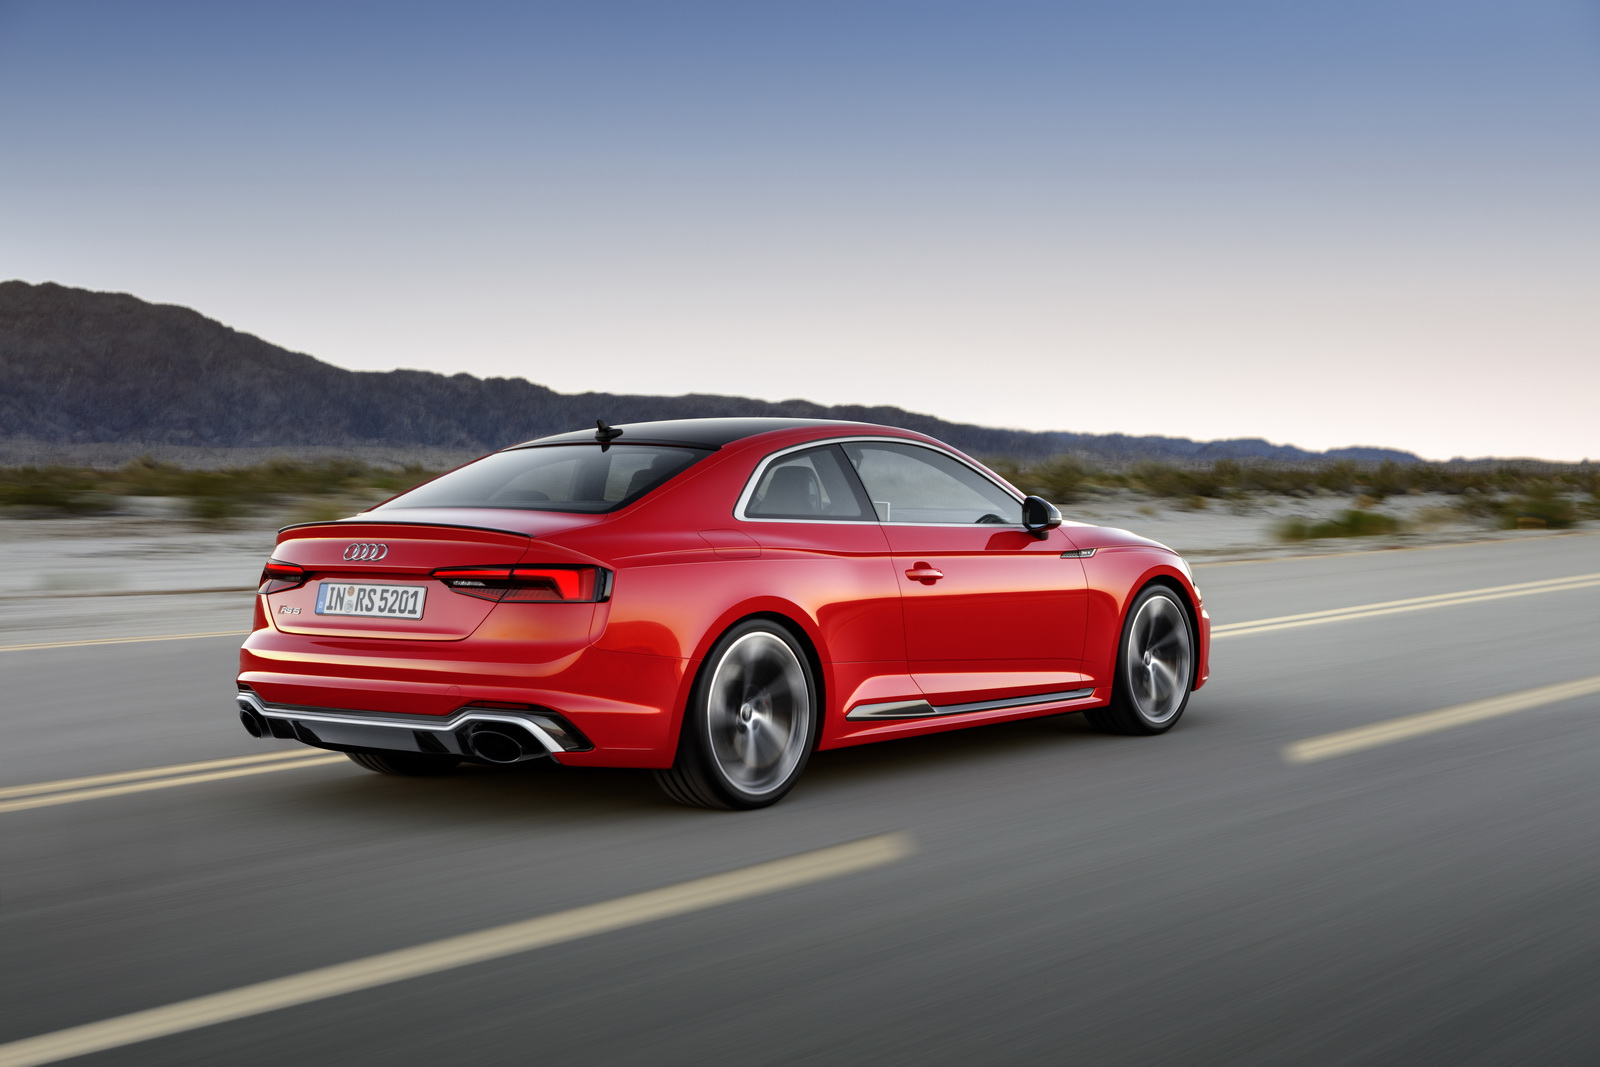 The Audi Rs Models New Car Release Date - All audi a models